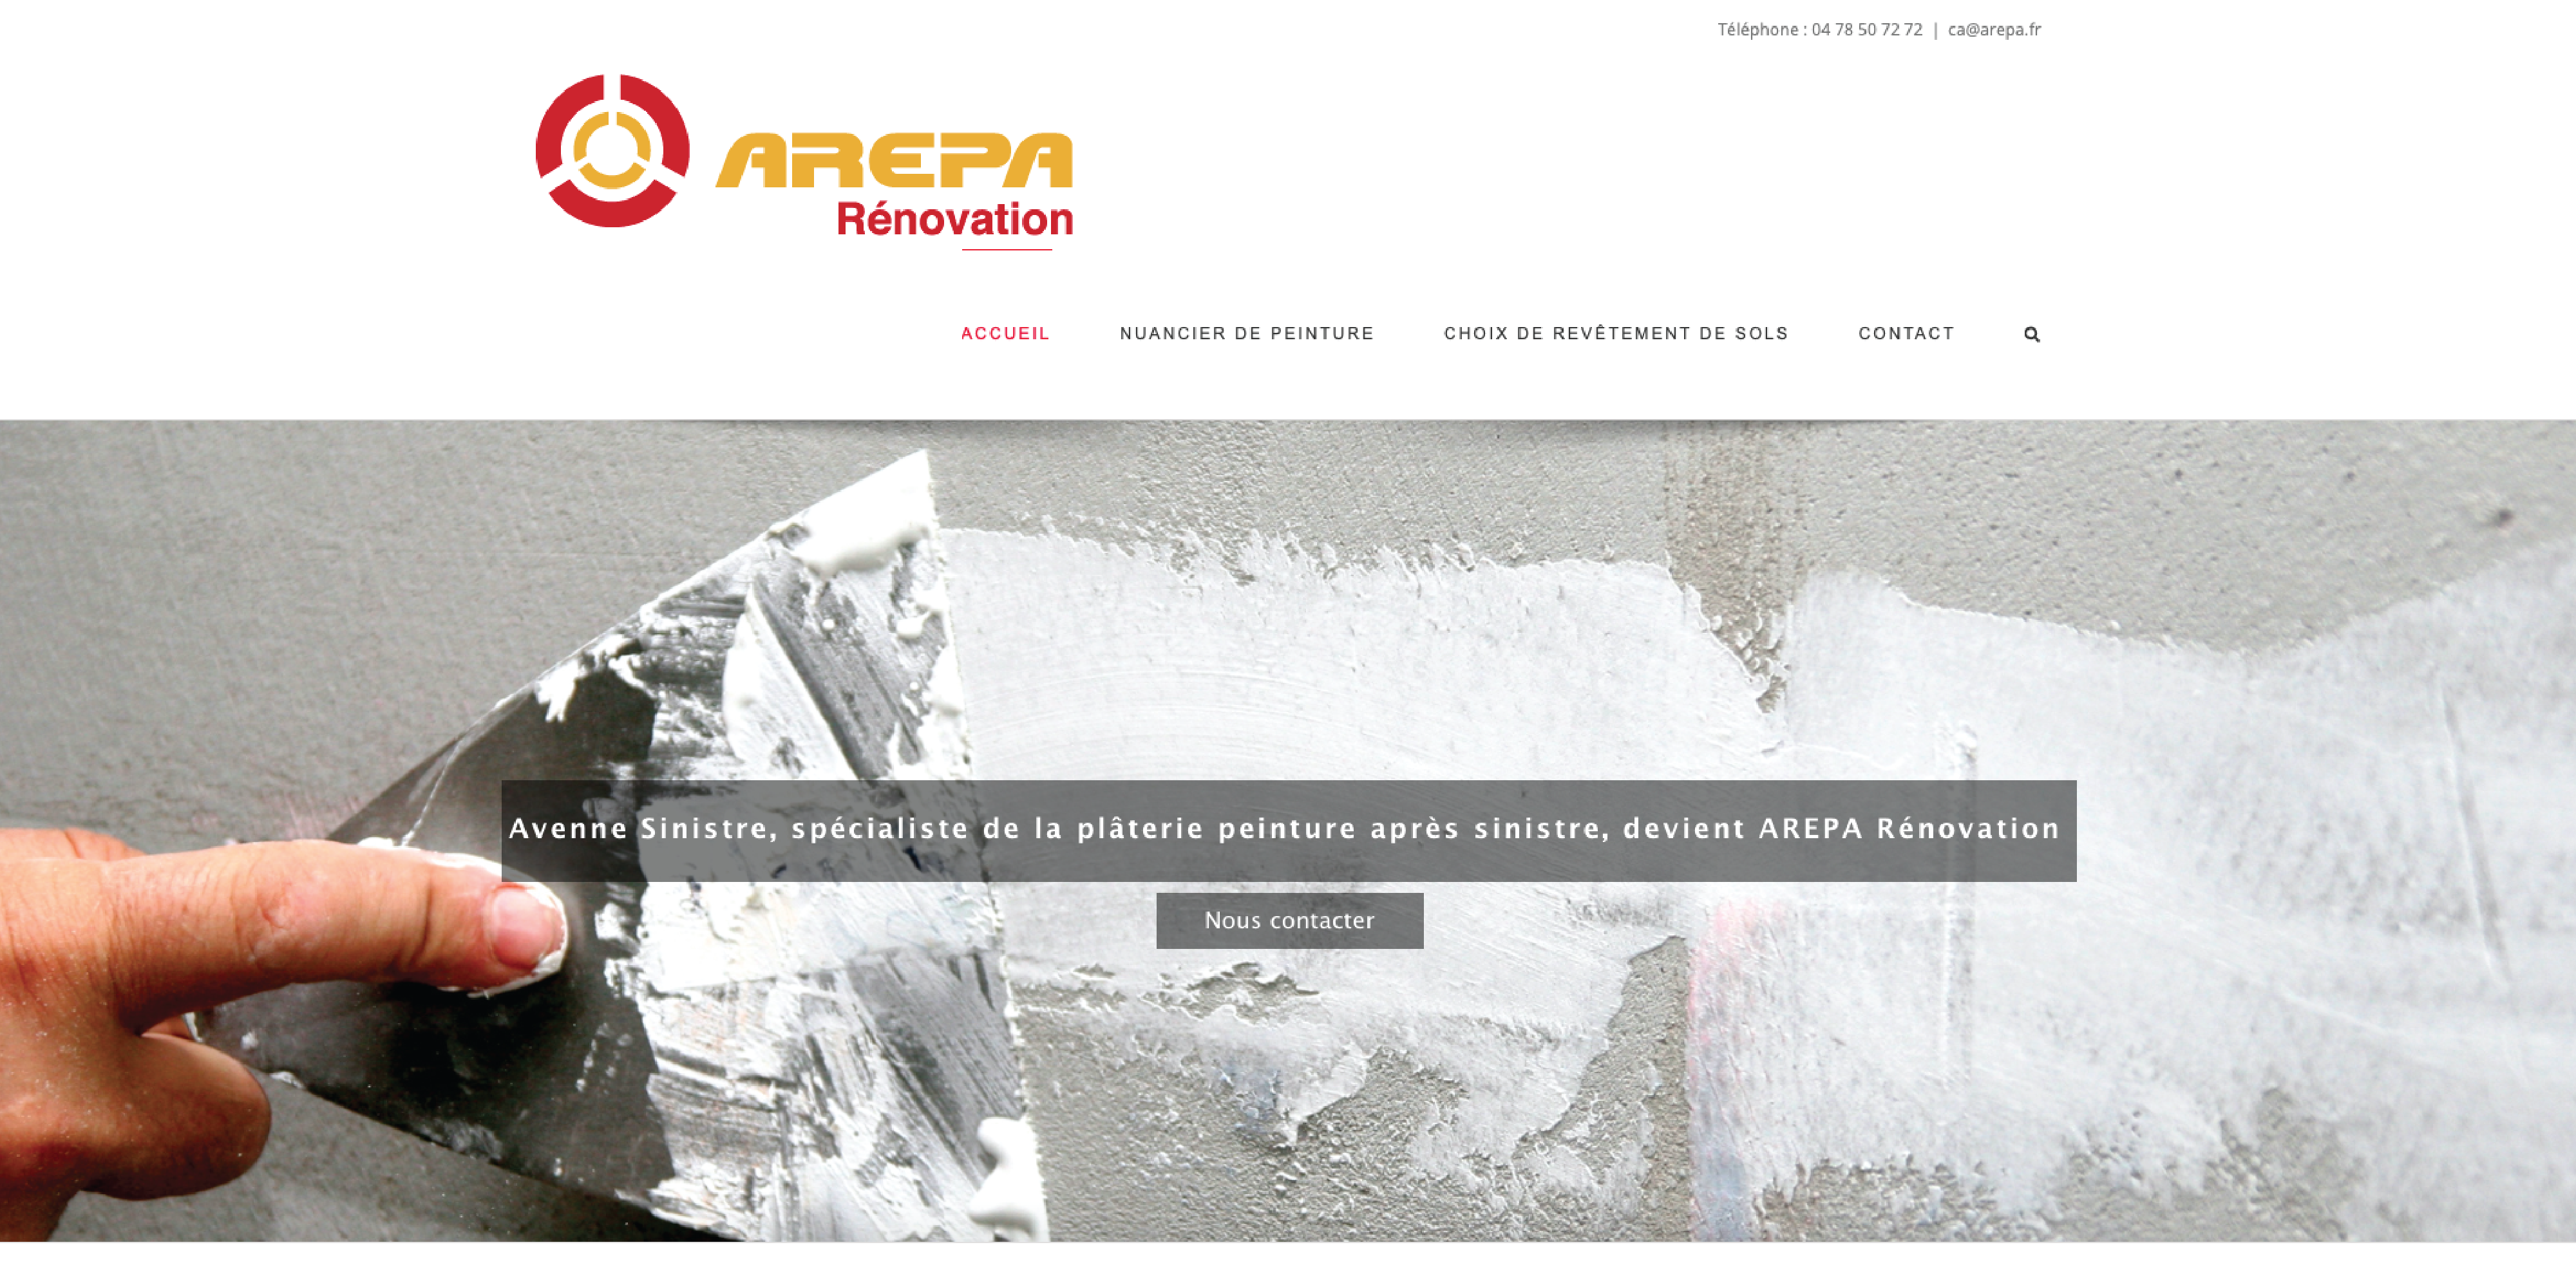 arepa renovation, hydrotech pdf, hydrotech, _leasy concept, louer mon site, location de site, vente de site internet, site web, lyon, rhone alpes, creation de site internet